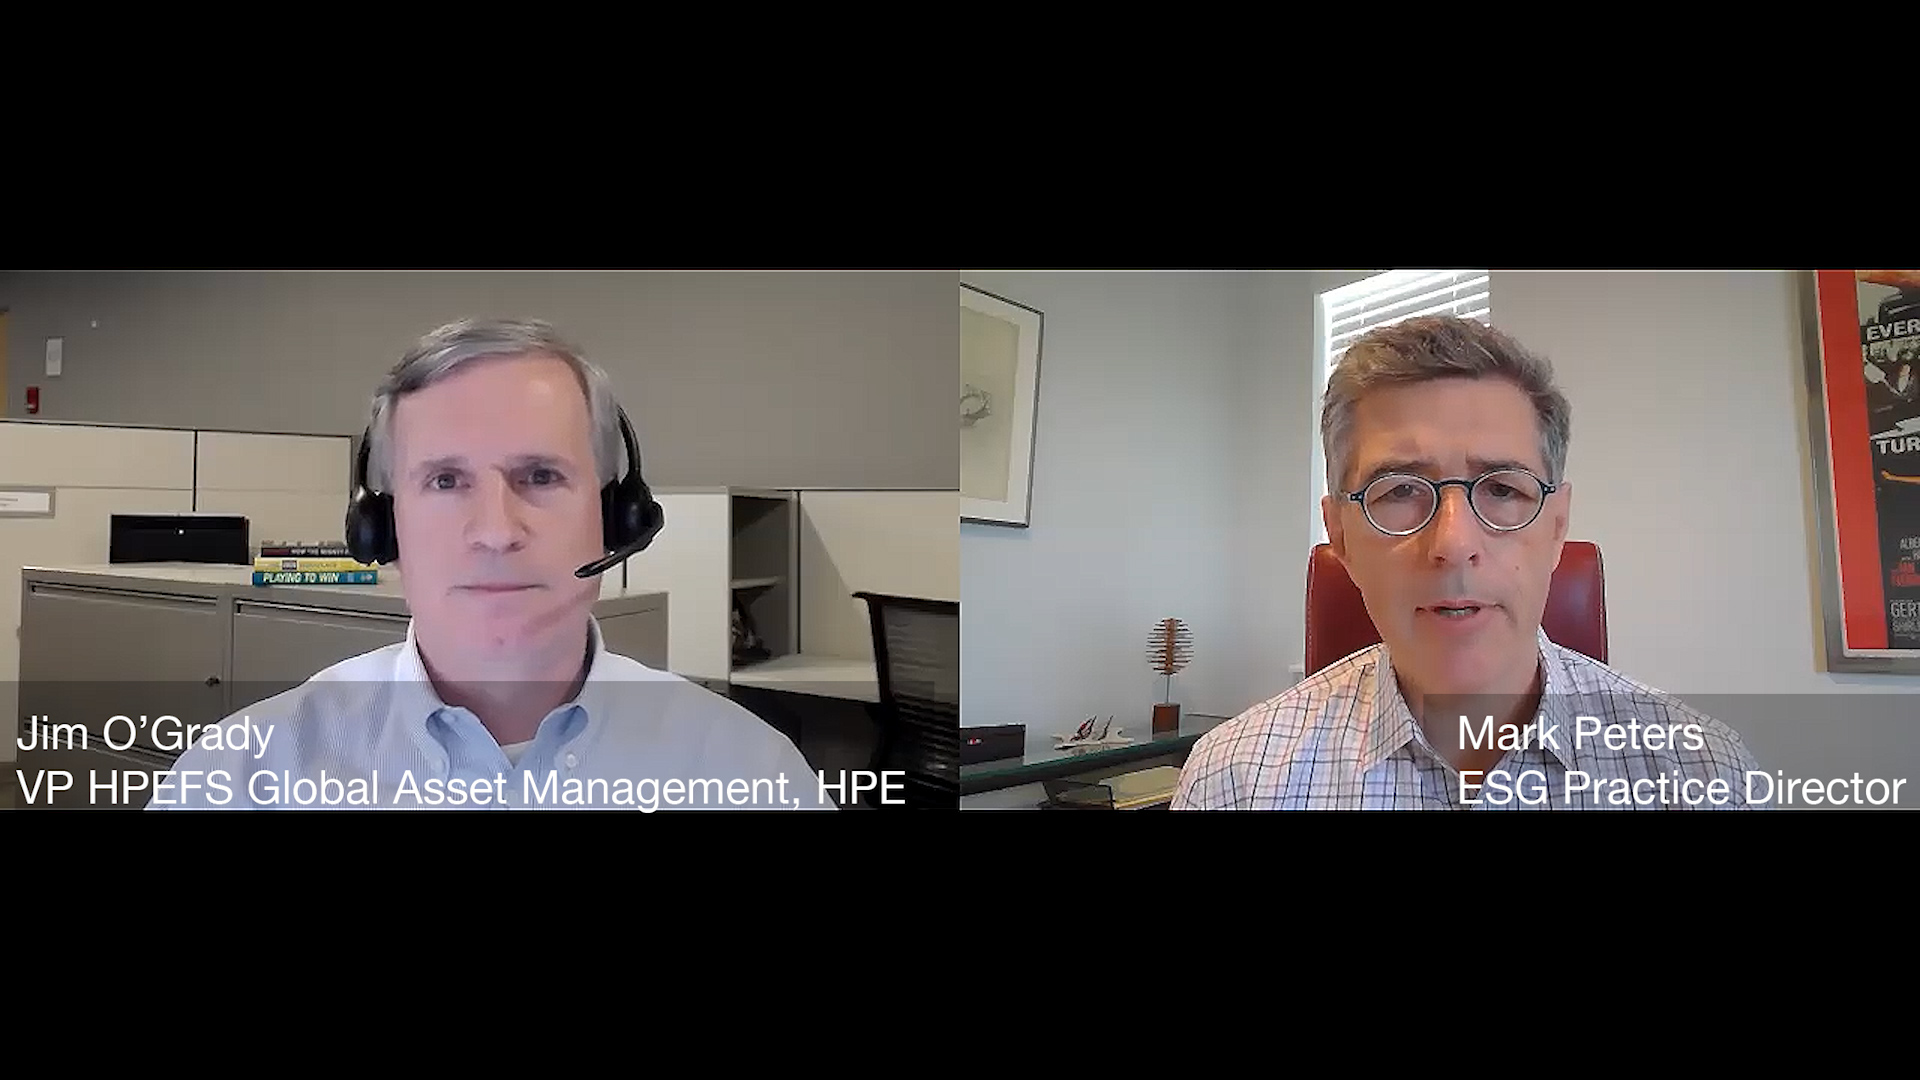 Marketing in Challenging Times - in Conversation with Jim O'Grady of HPE Financial Services  (Video)